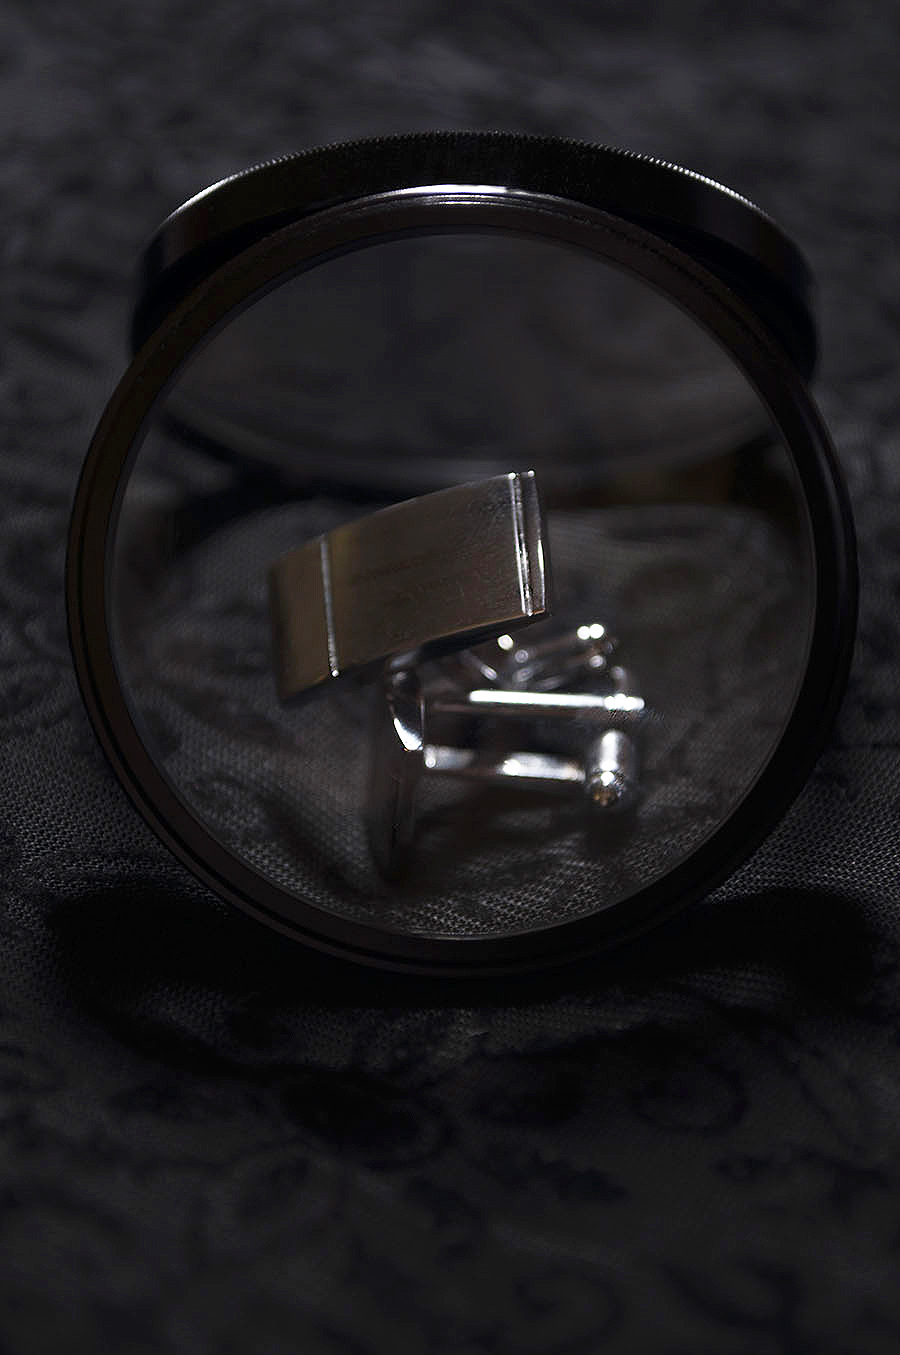 Rebecca_Huang_student_photography_still_life_accessories_cuff_links_silver_minimal_lens_magnifying_black_velvet_floral_dark